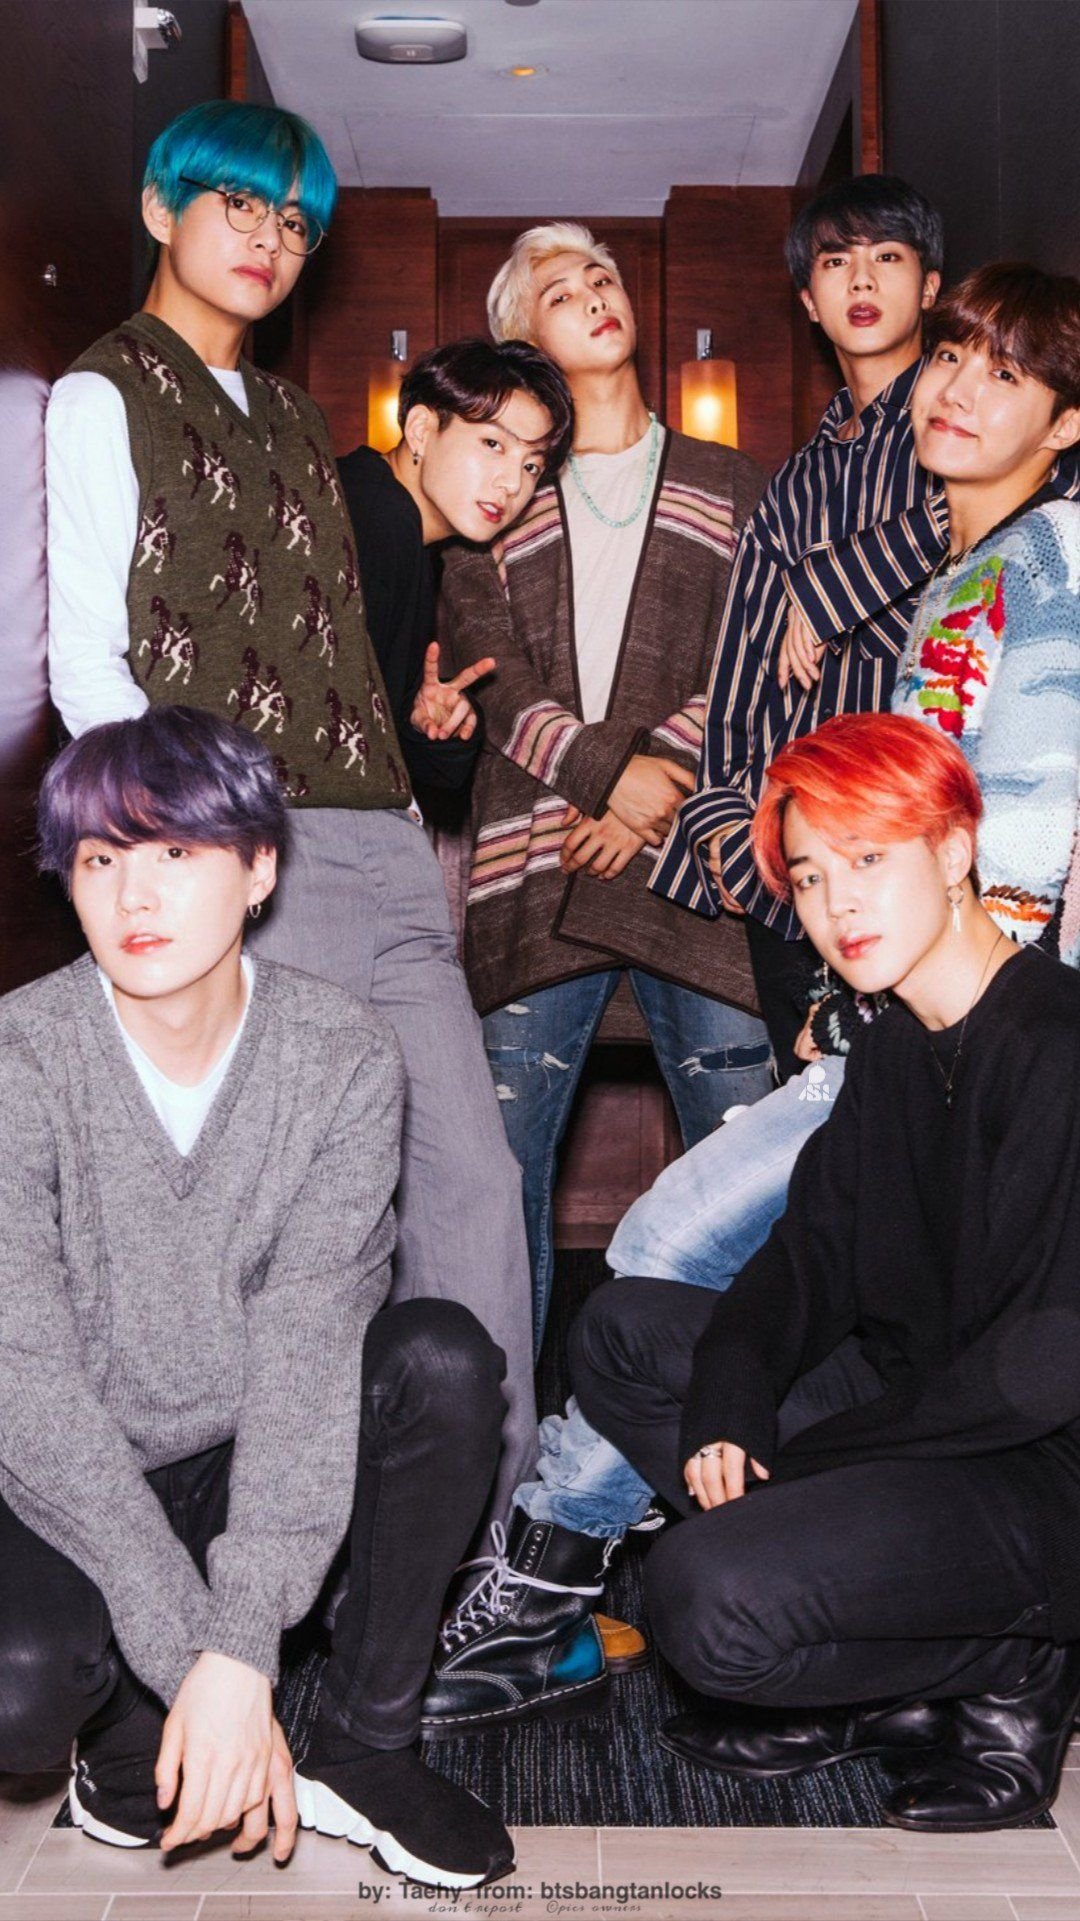 Wallpaper BTS in 2019 Bts lockscreen, Bts wallpaper, Bts